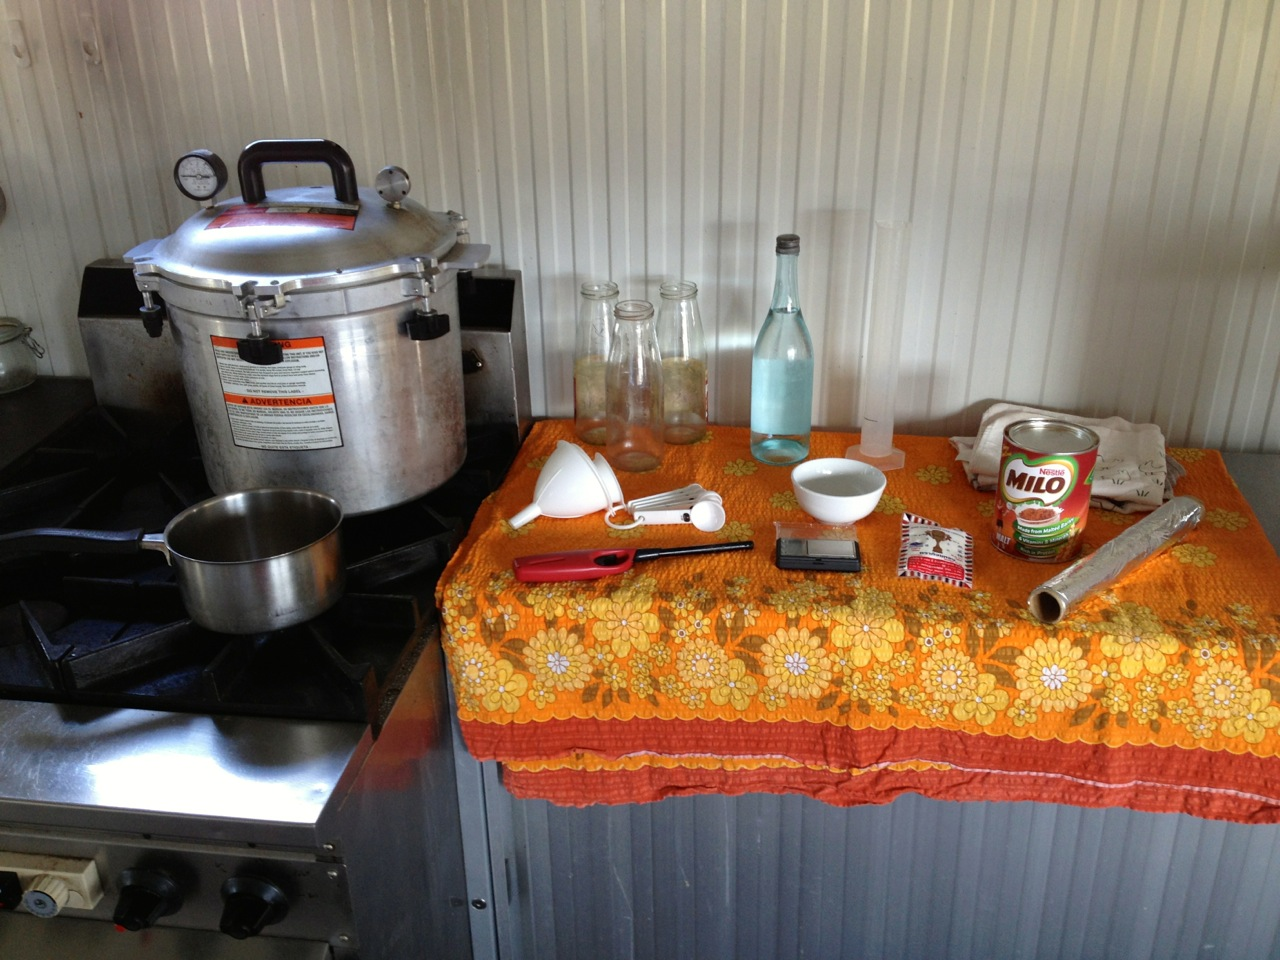 The Milkwood DIY agar sterilisation unit. Orange tablecloth optional.